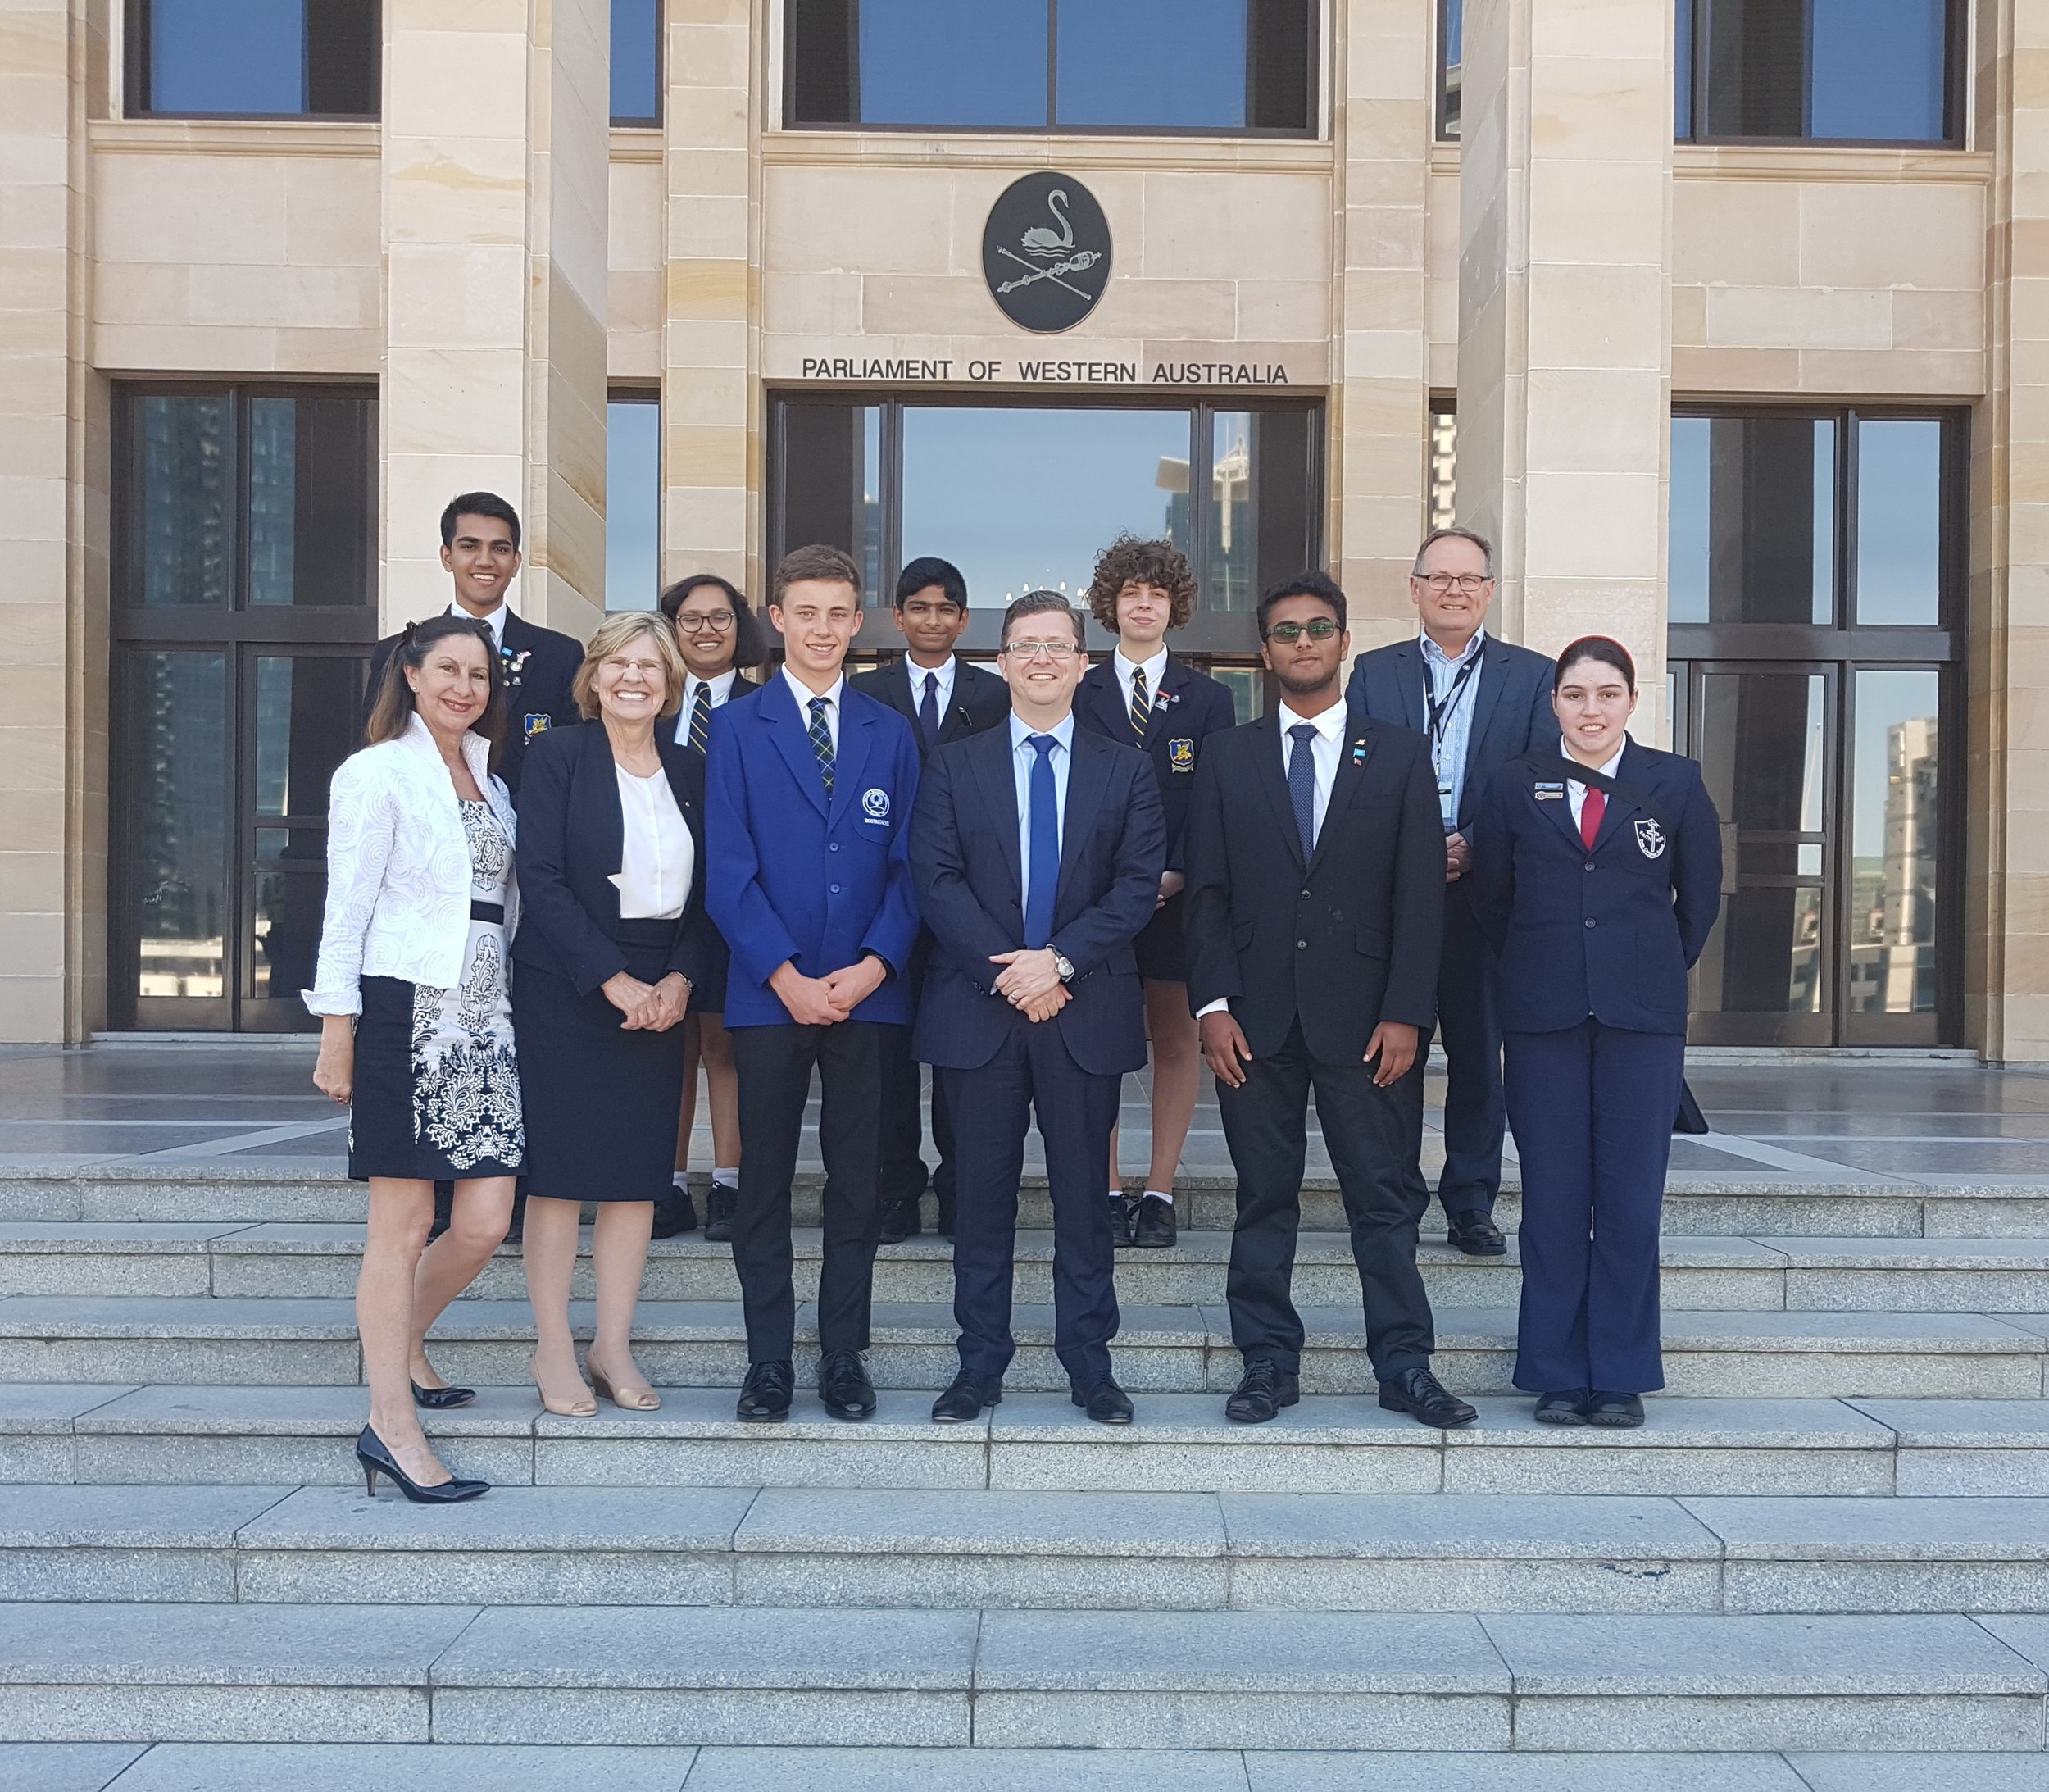 Hon Tjorn Sibma MLC on the steps of the Western Australian Parliament with Professor Lyn Beazley AO FTSE and Ms Susie Norvilas from the Royal Commonwealth Society,winners of the Royal Commonwealth Society Speech and Leadership Contest 2017 and Hon David Templeman, MLA